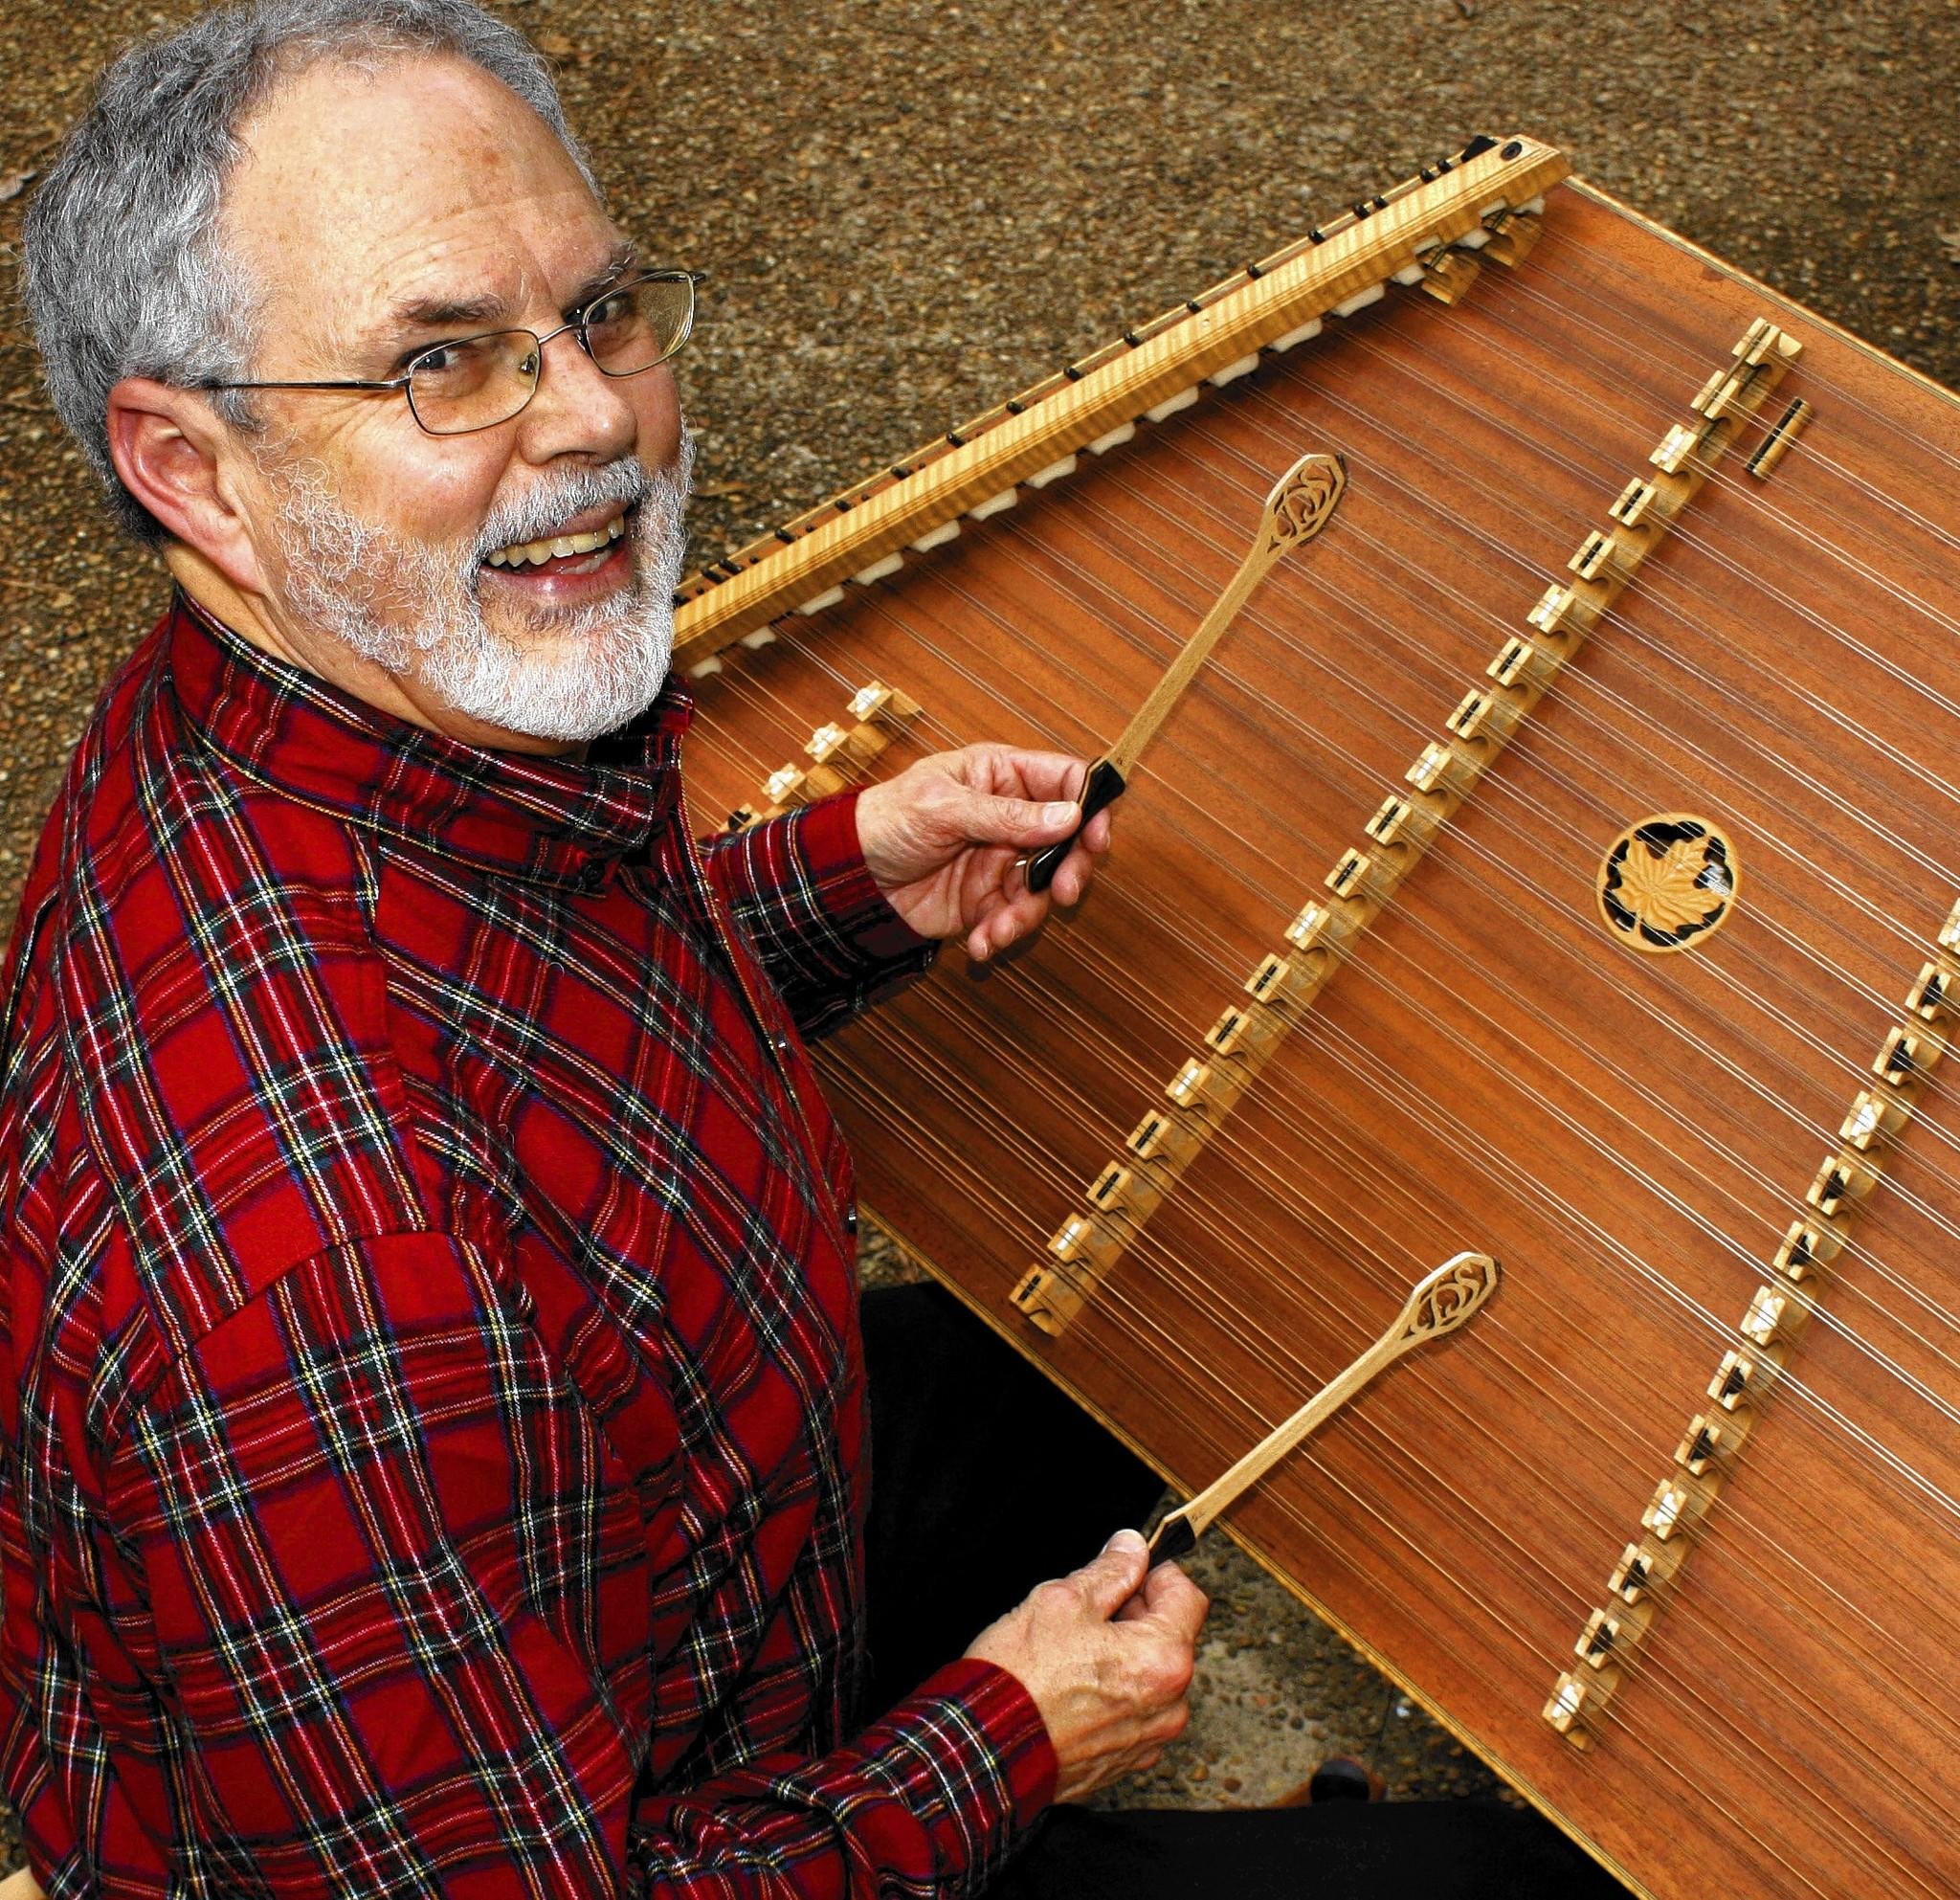 James City County resident Timothy Seaman has sold thousands of copies of his three holiday-themed CDs. They feature Seaman playing hammered dulcimer as well as flute and other instruments.